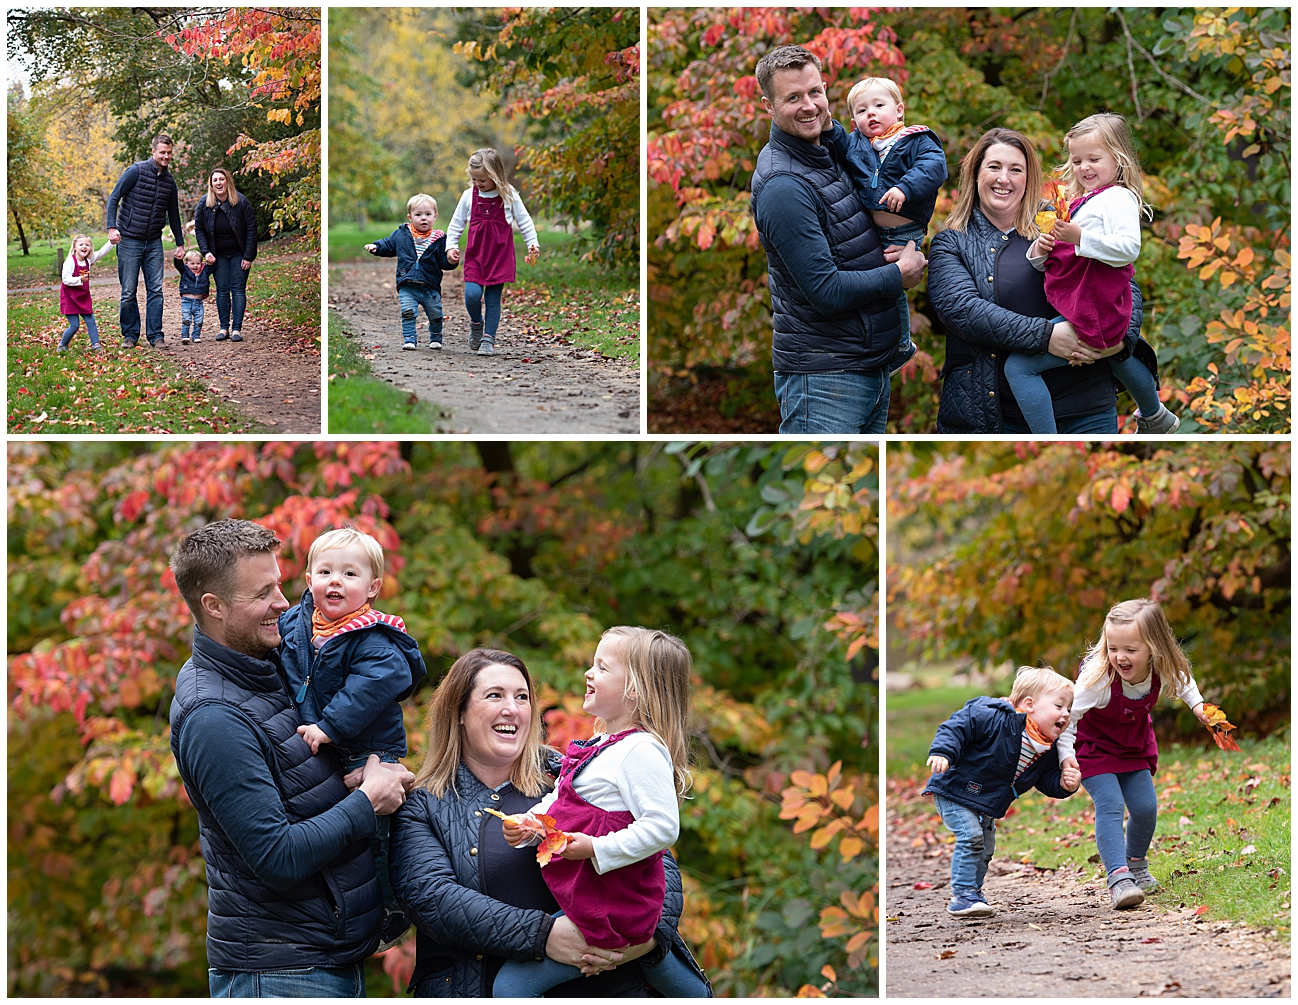 Autumn family photo session